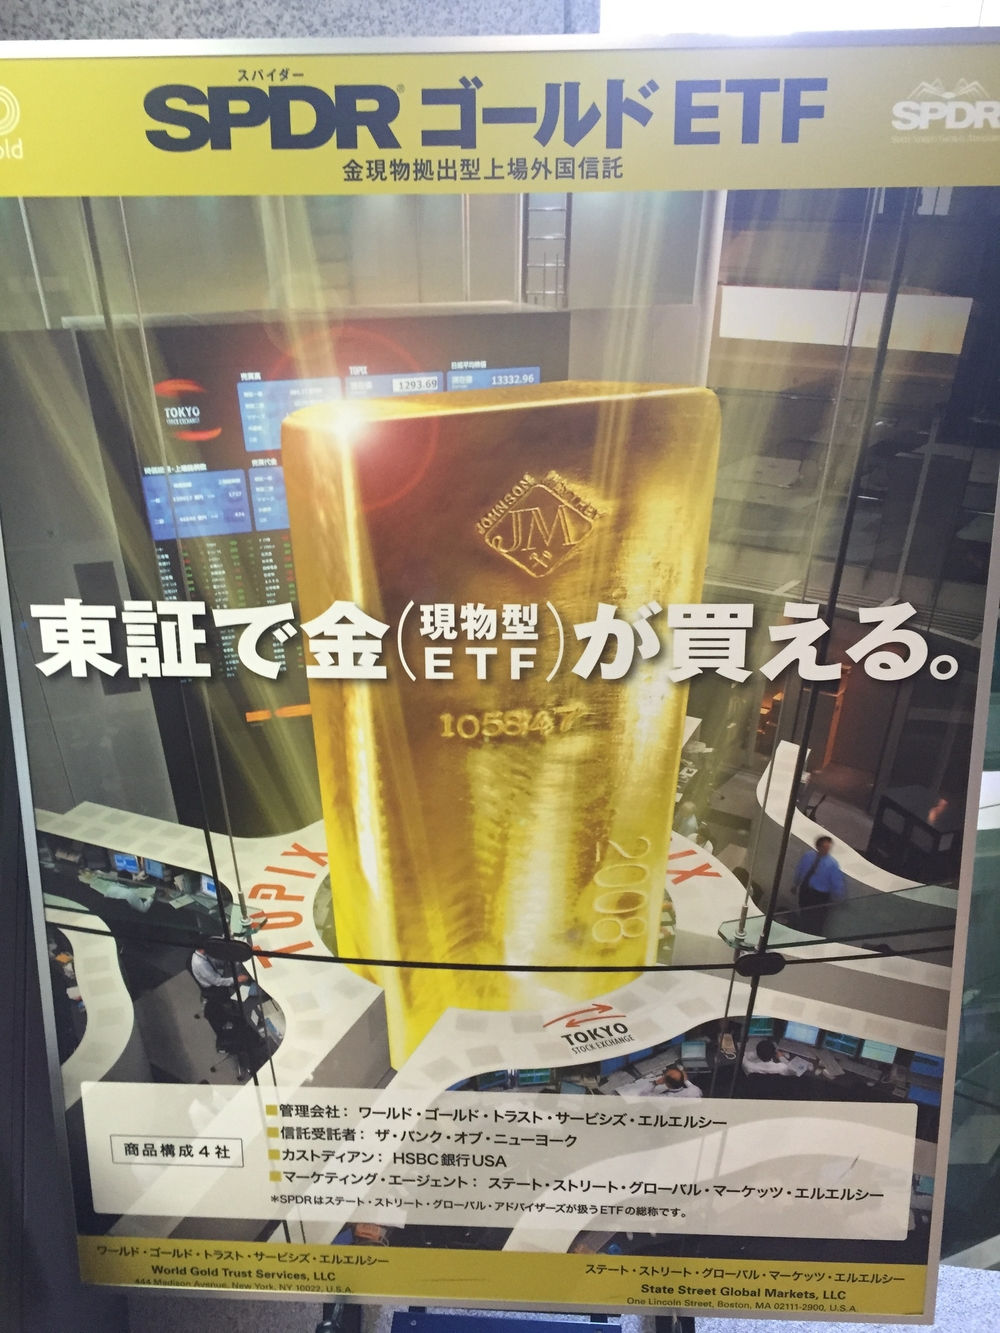 Gold SPDR ETF Poster in the Tokyo Stock Exchange